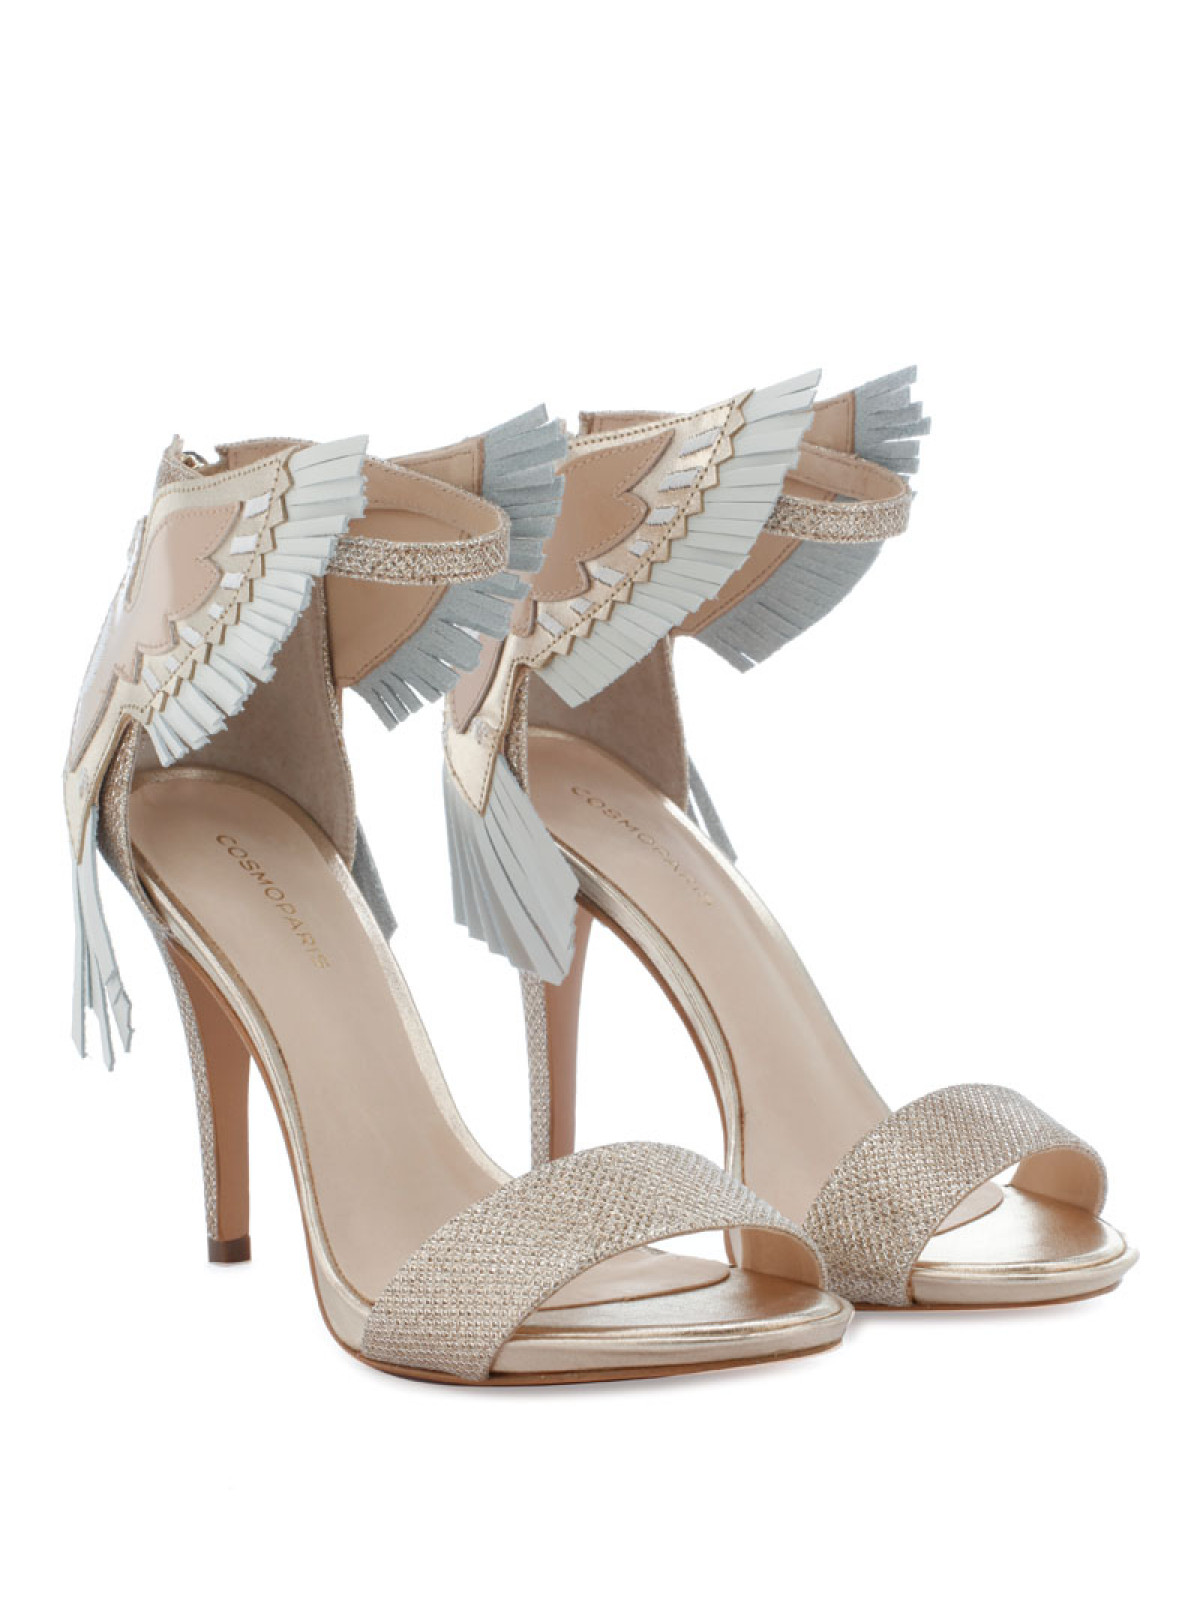 1. sandales-jaxi-creme-or-chaussures-mariee